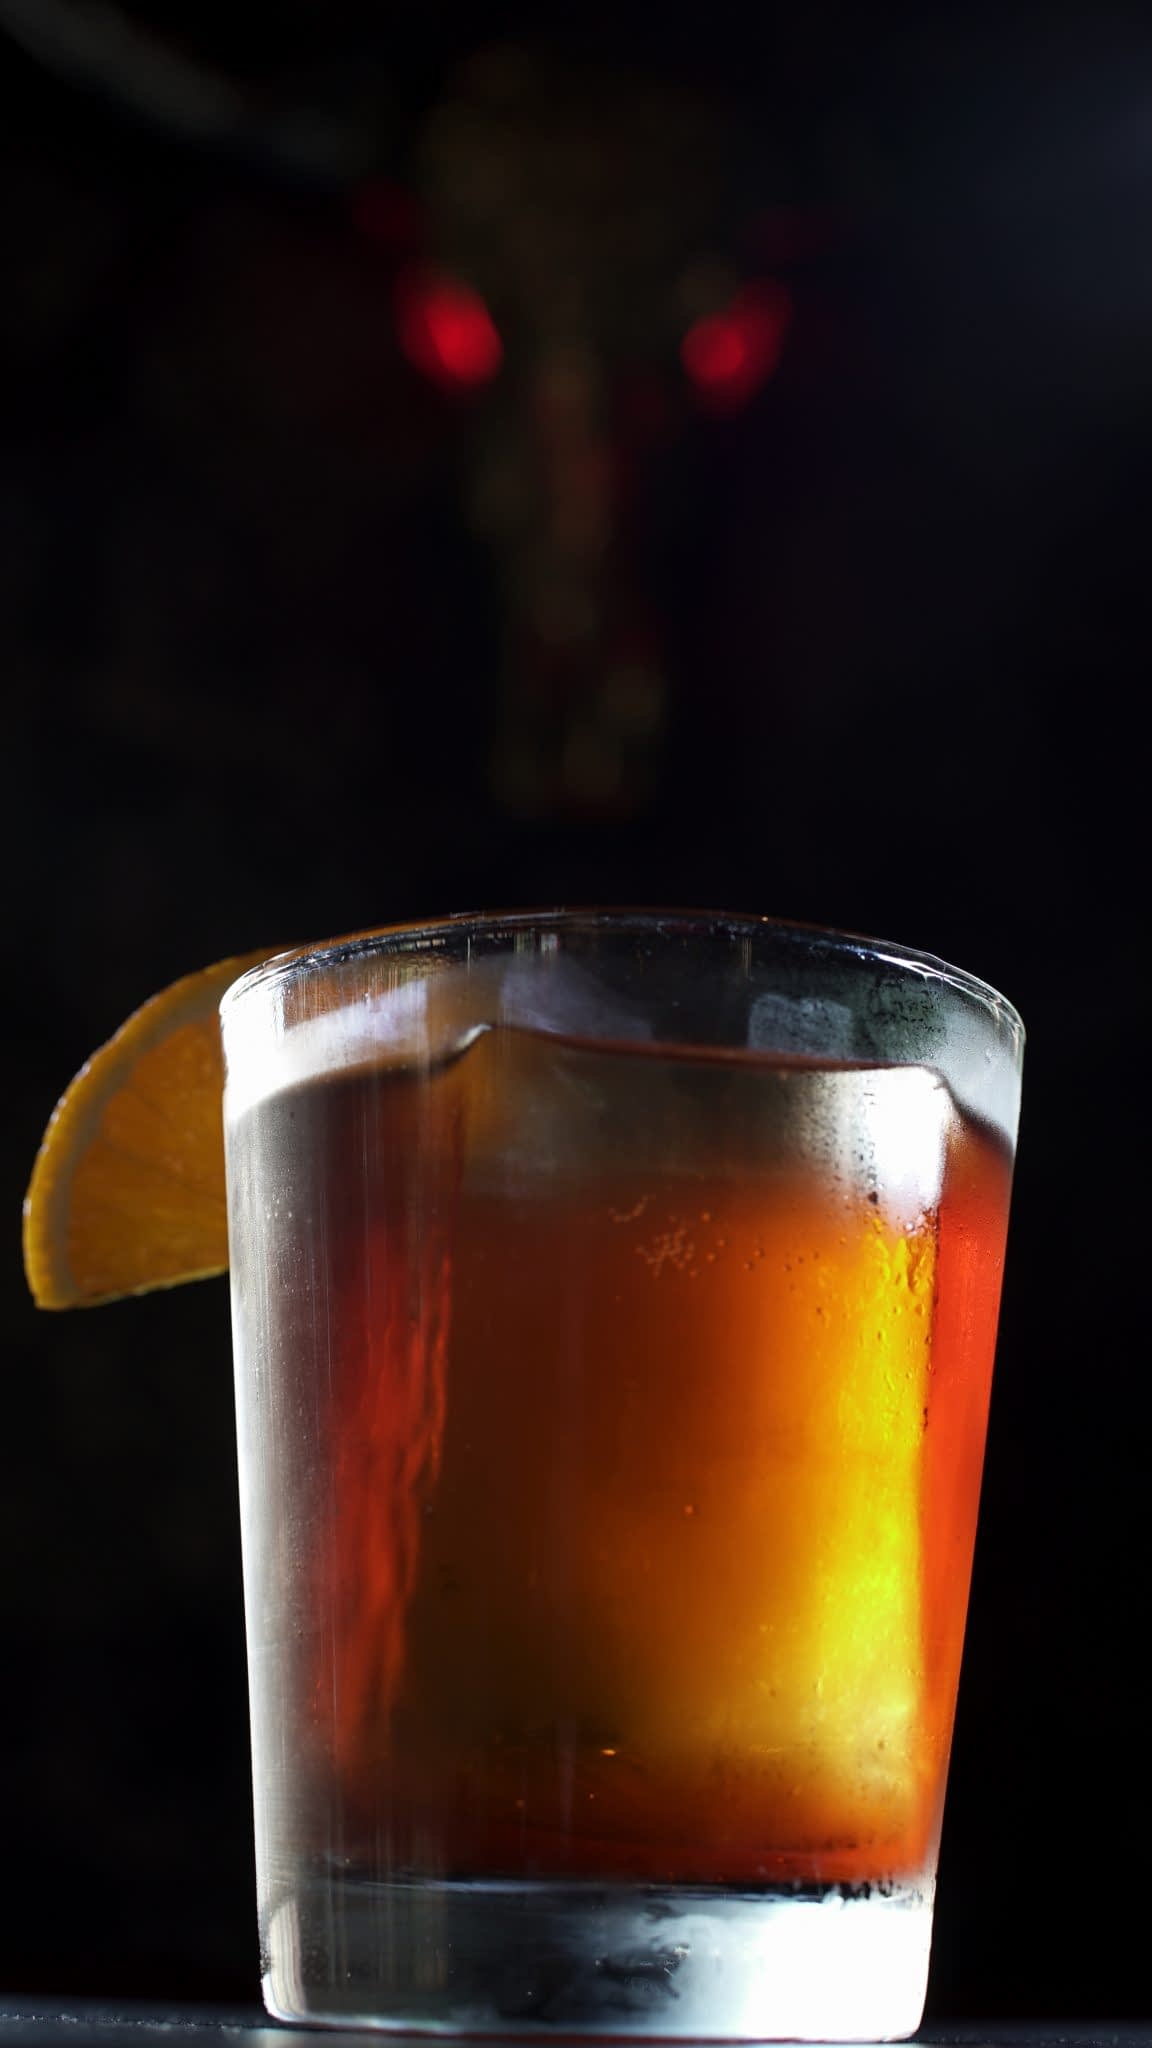 A reddish brown cocktail served in a double rocks glass on crystal clear ice is garnished with an orange wedge. The drink hovers over a black background. An ominous skull with glowing red eyes is faintly visible in the background.